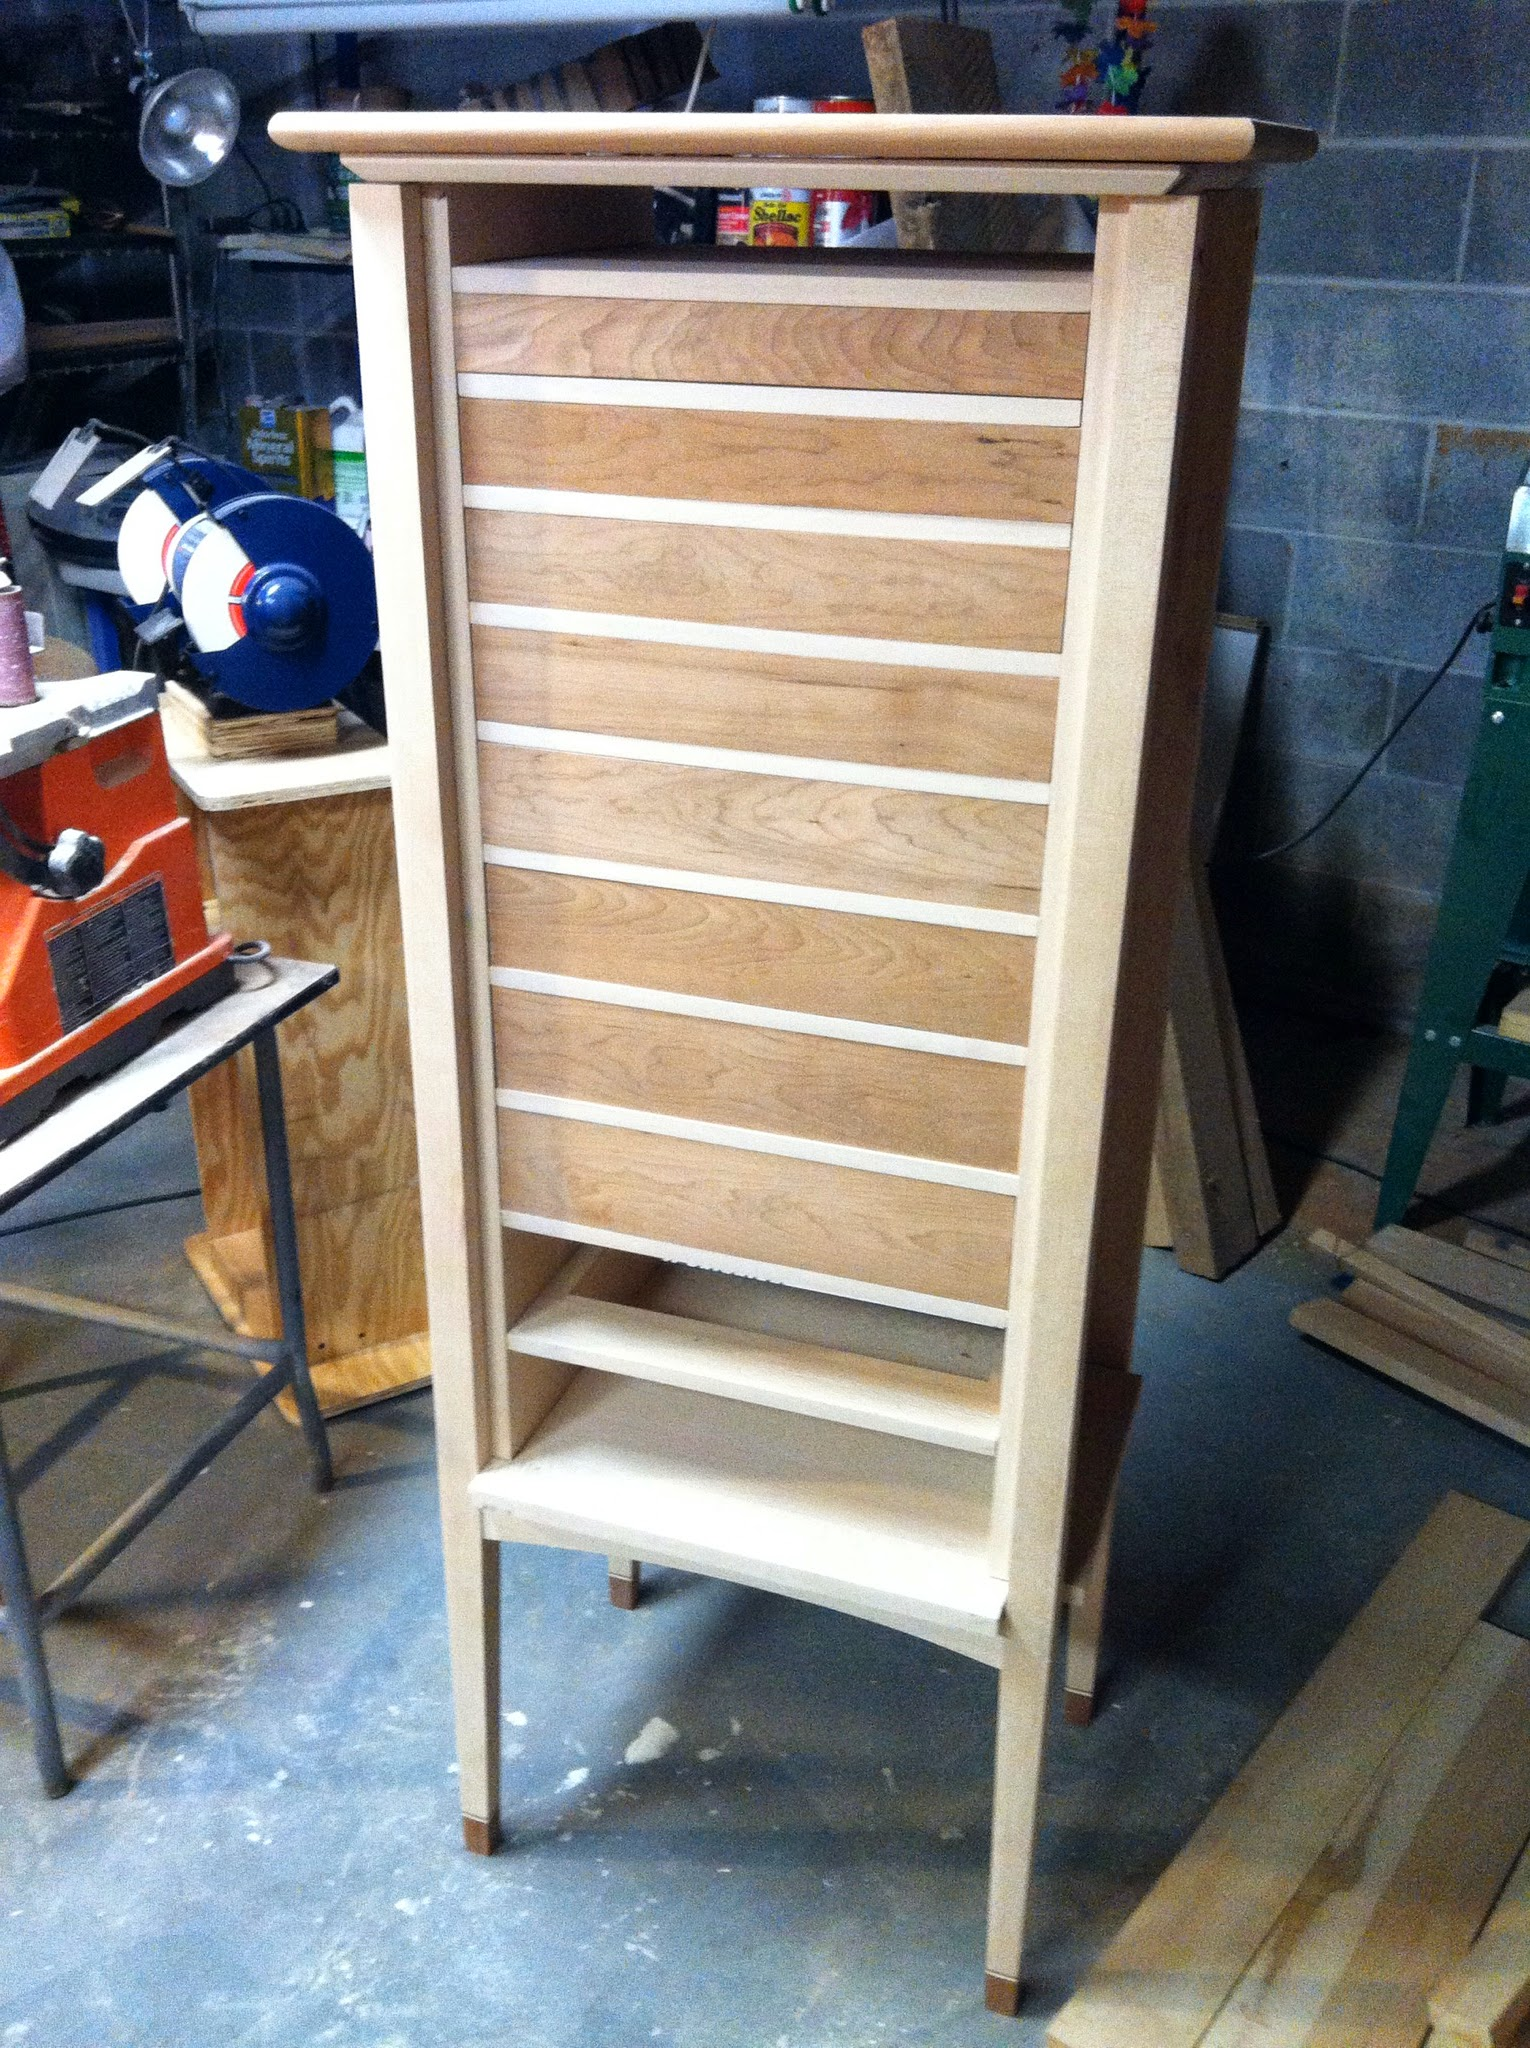 Front view as of April 7, 2014 - eight drawers done